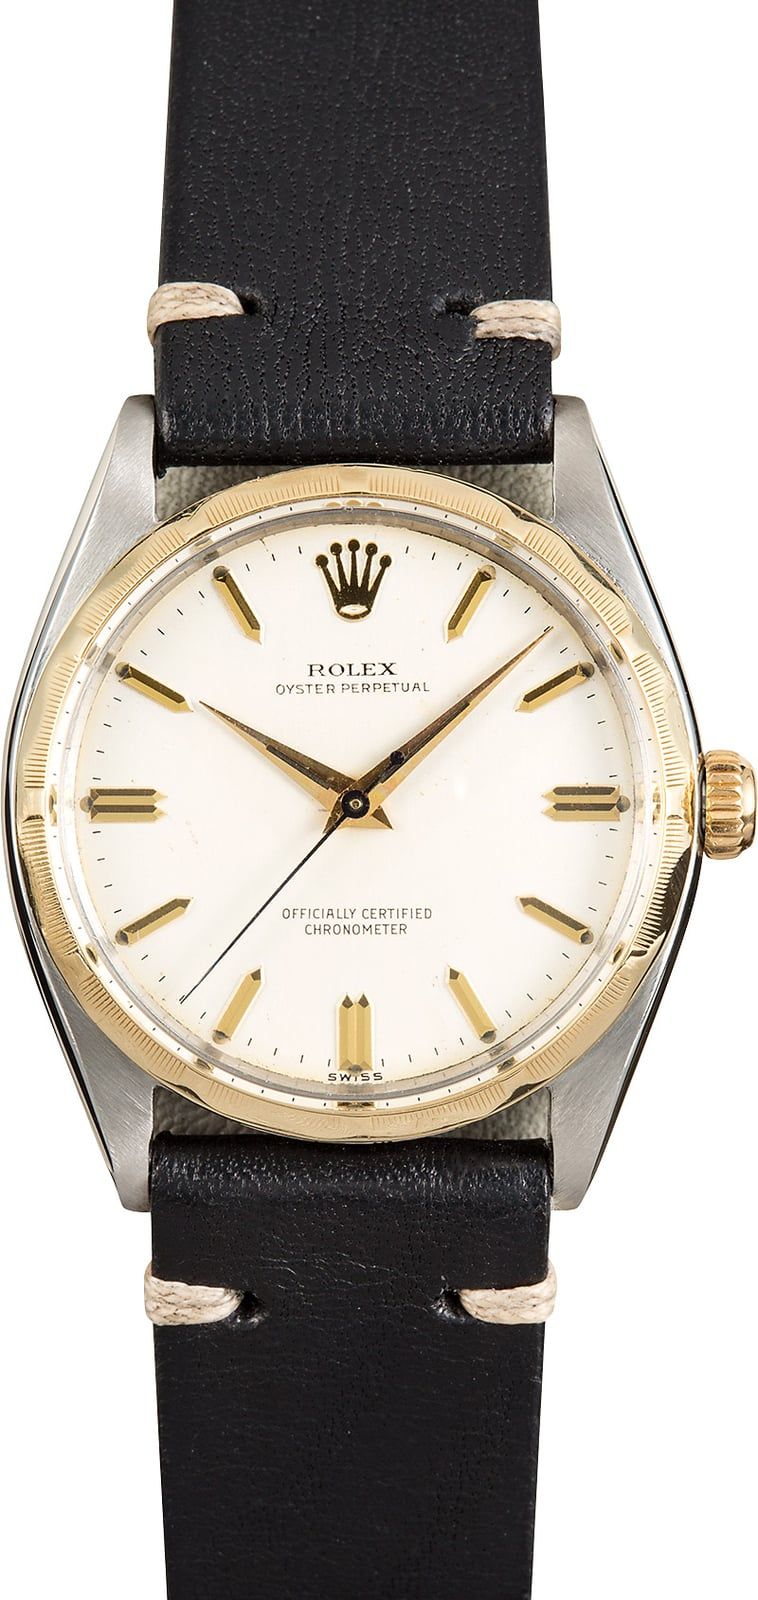 Vintage rolex oyster perpetual 6566 for Vintage rolex oyster